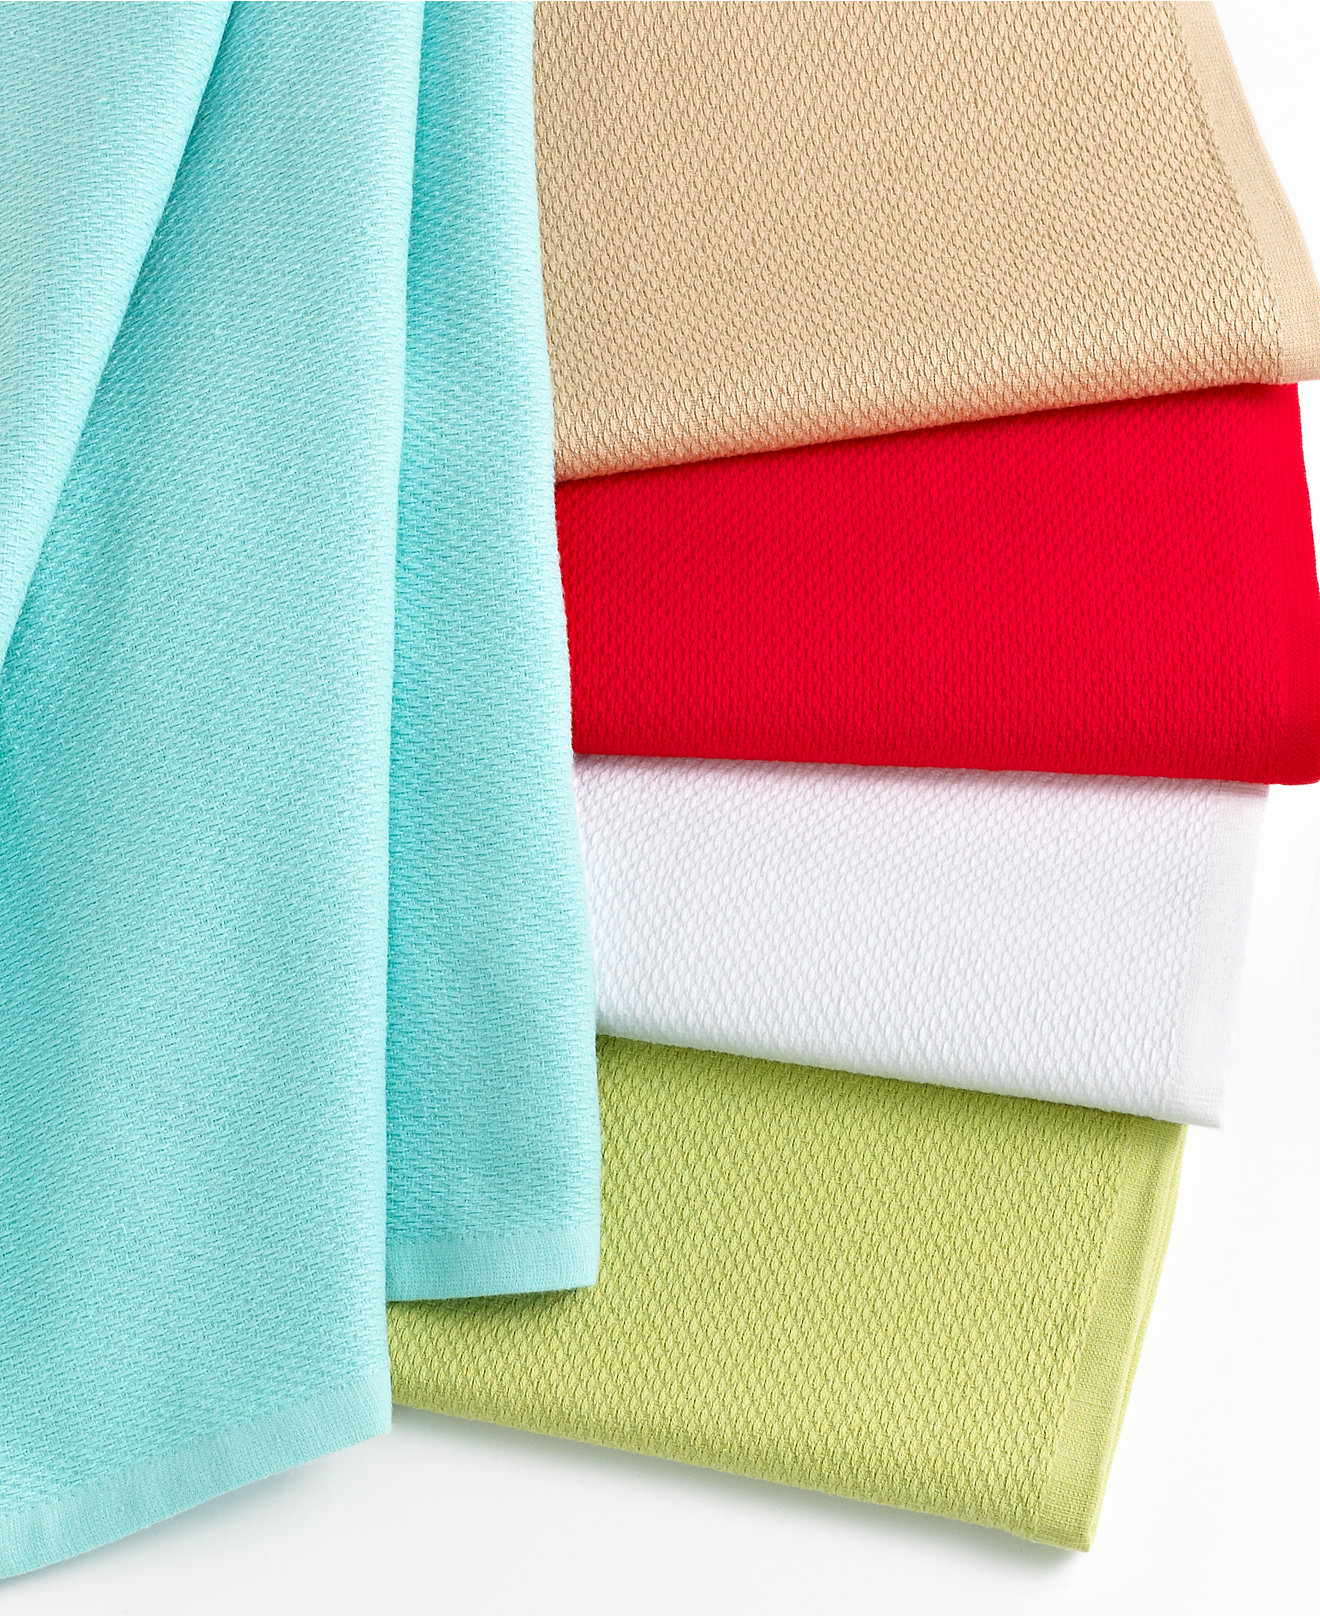 Martha Stewart Collection Piqué Kitchen Towels - Kitchen Gadgets - Kitchen - Macy's